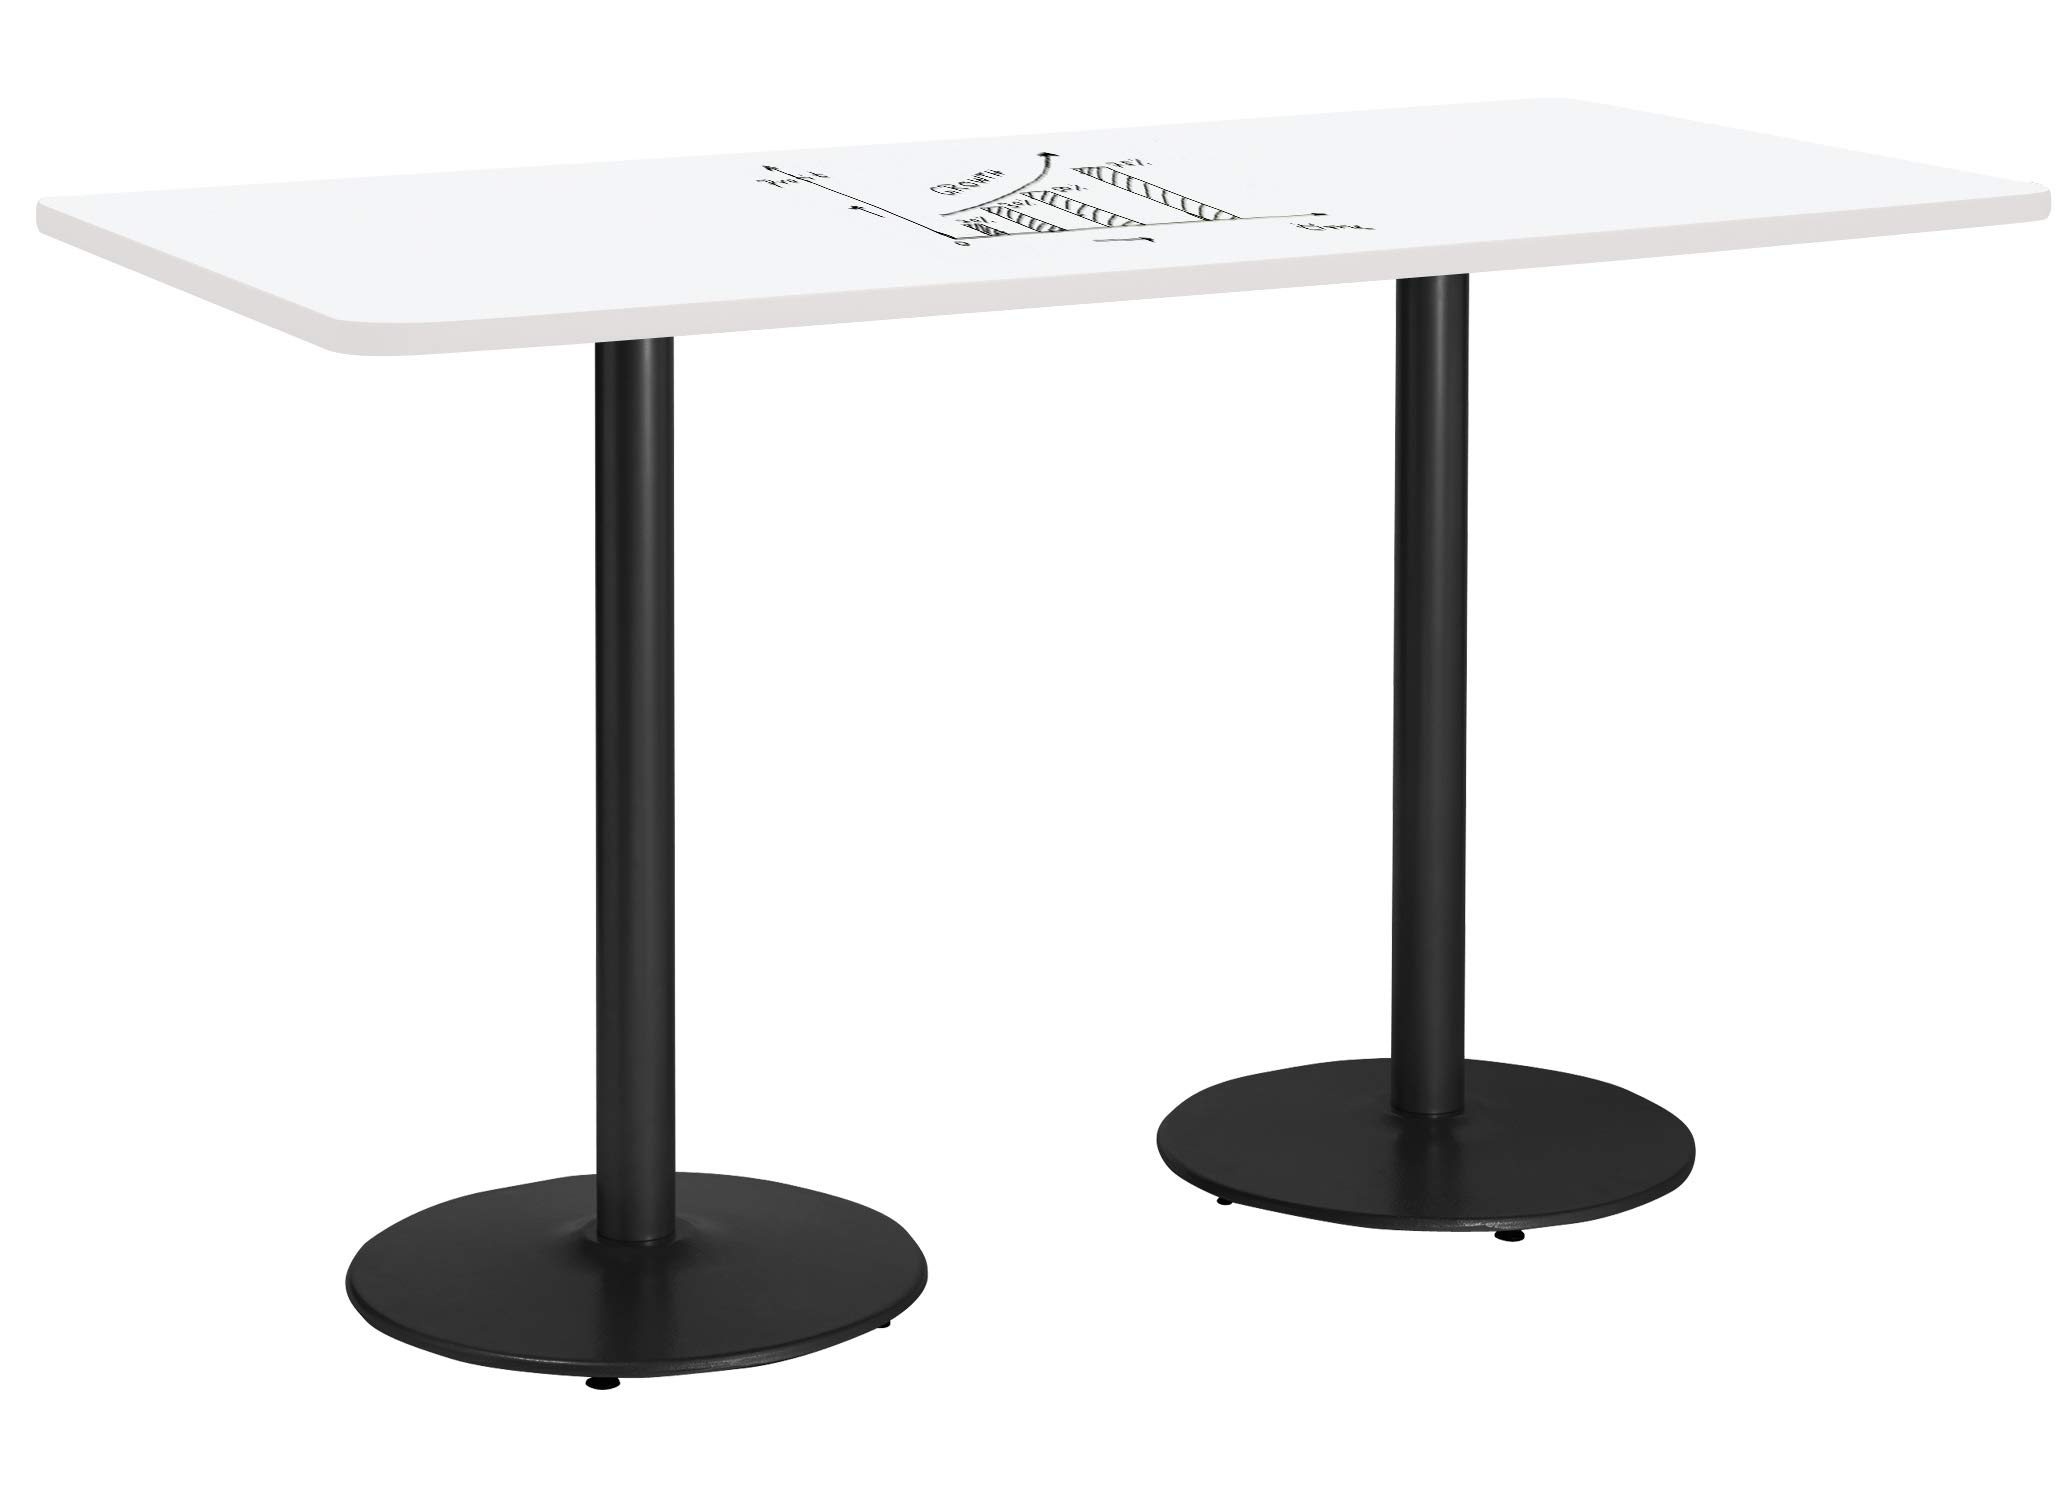 KFI Whiteboard Pedestal Table, 36'' W x 42'' D x 72''H, White by KFI